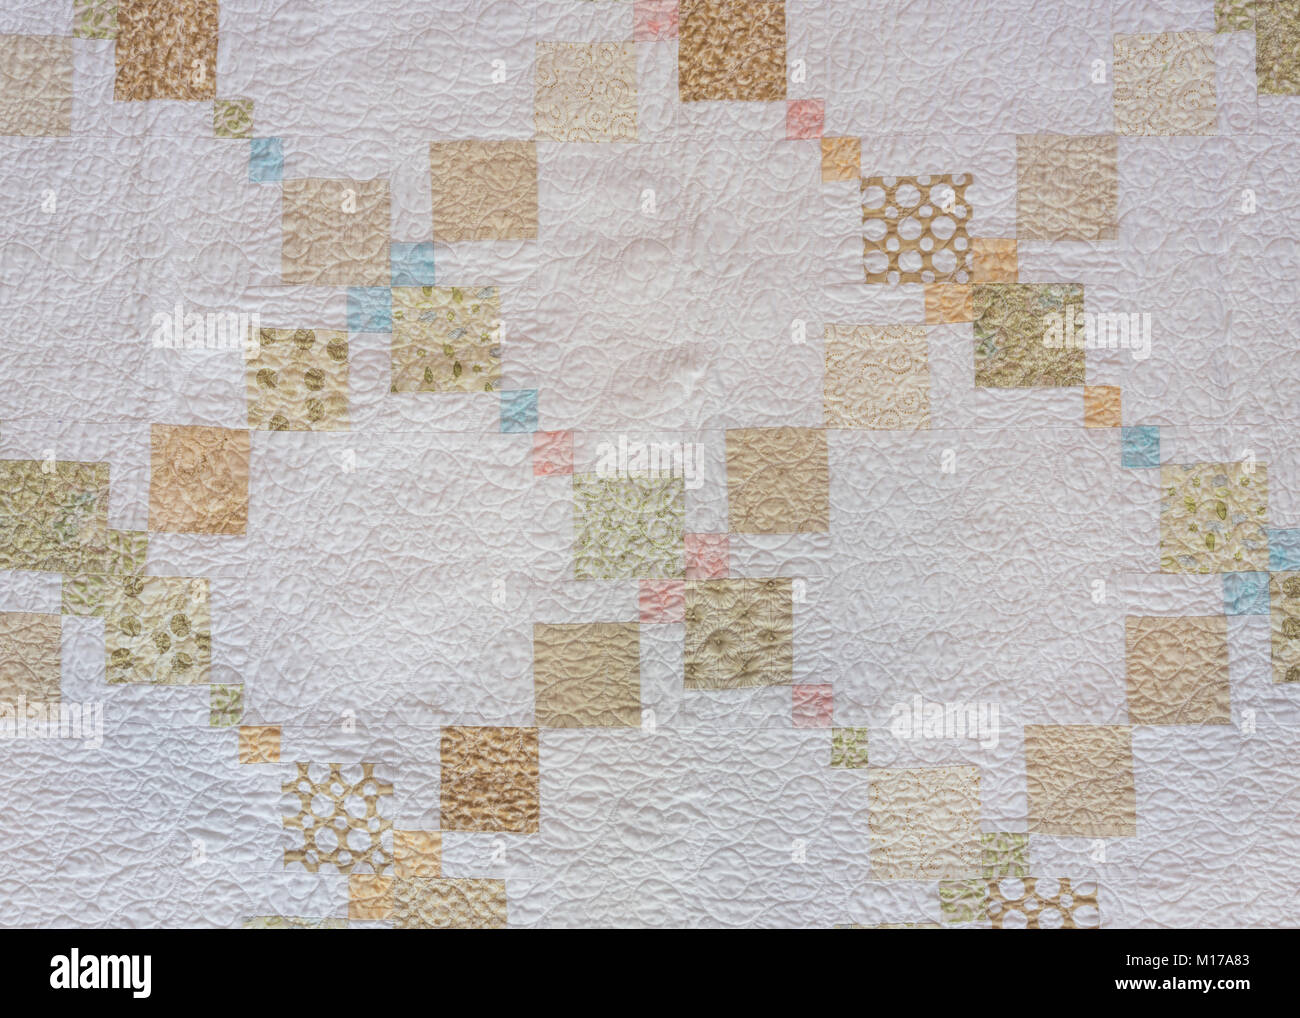 Tan and Neutral Quilt Squares on cream background - Stock Image